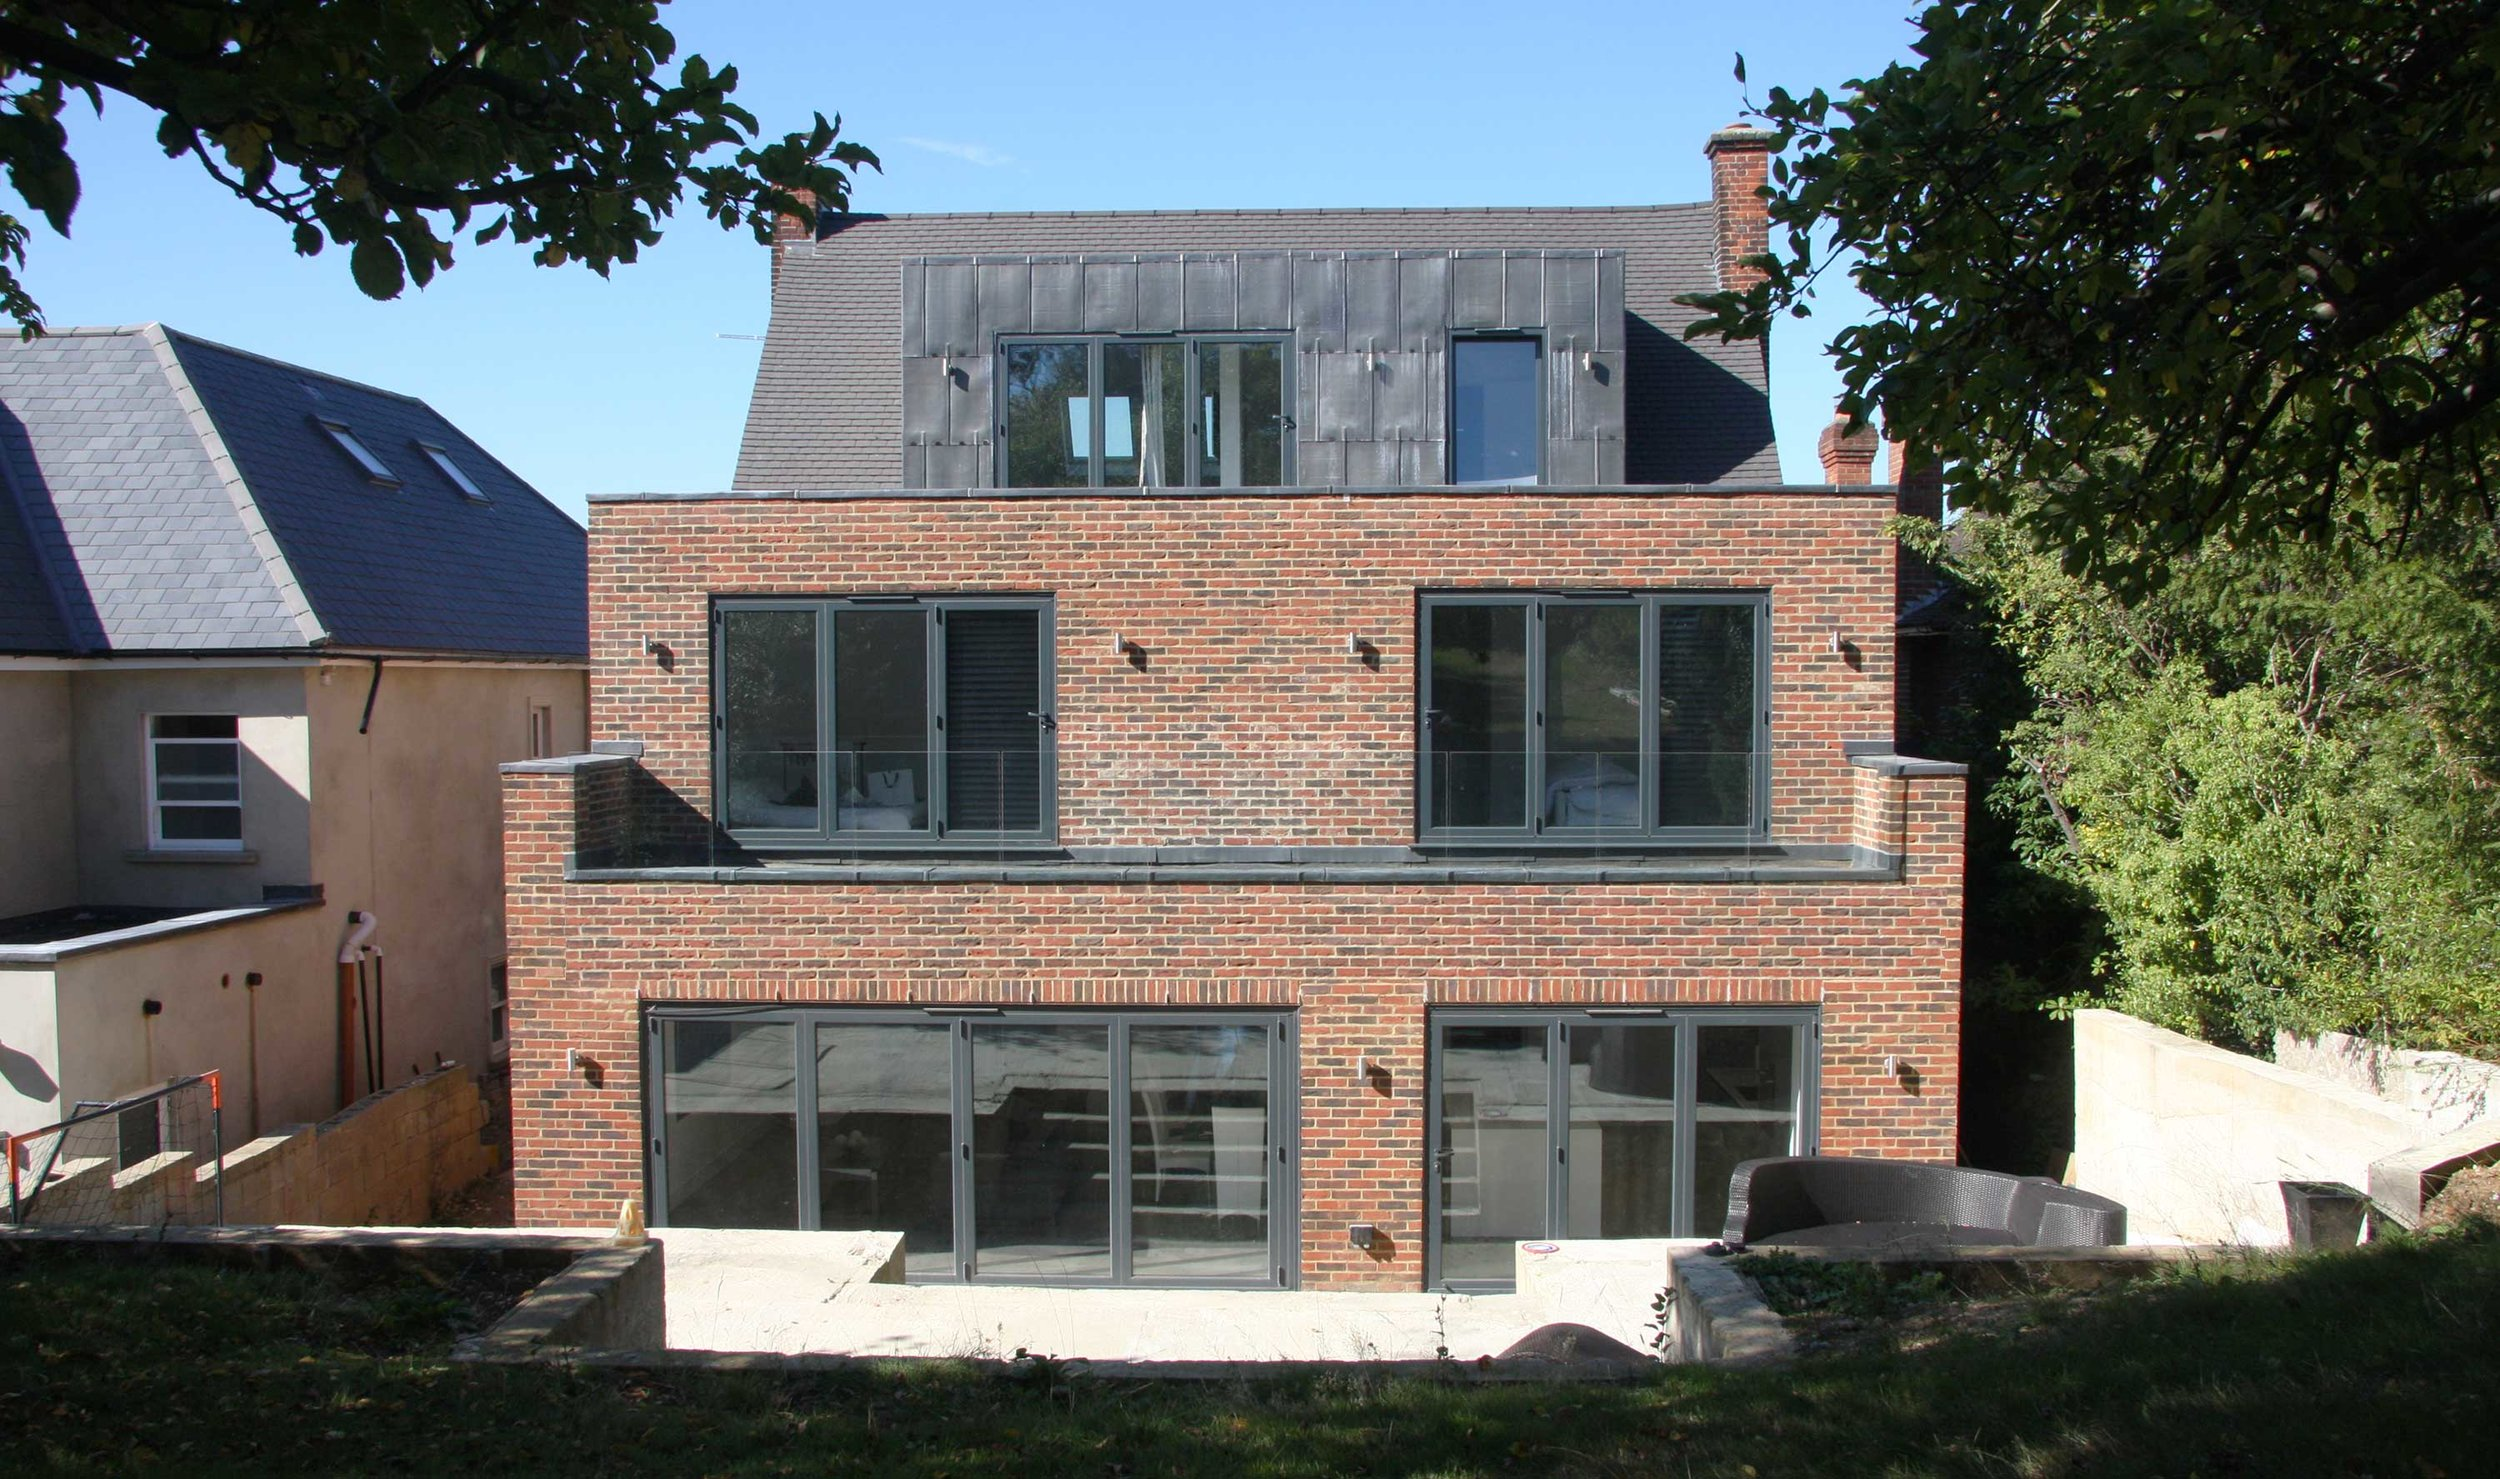 Extension, conversion and refurbishment of a detached house on Eleven Acre Rise in Loughton.